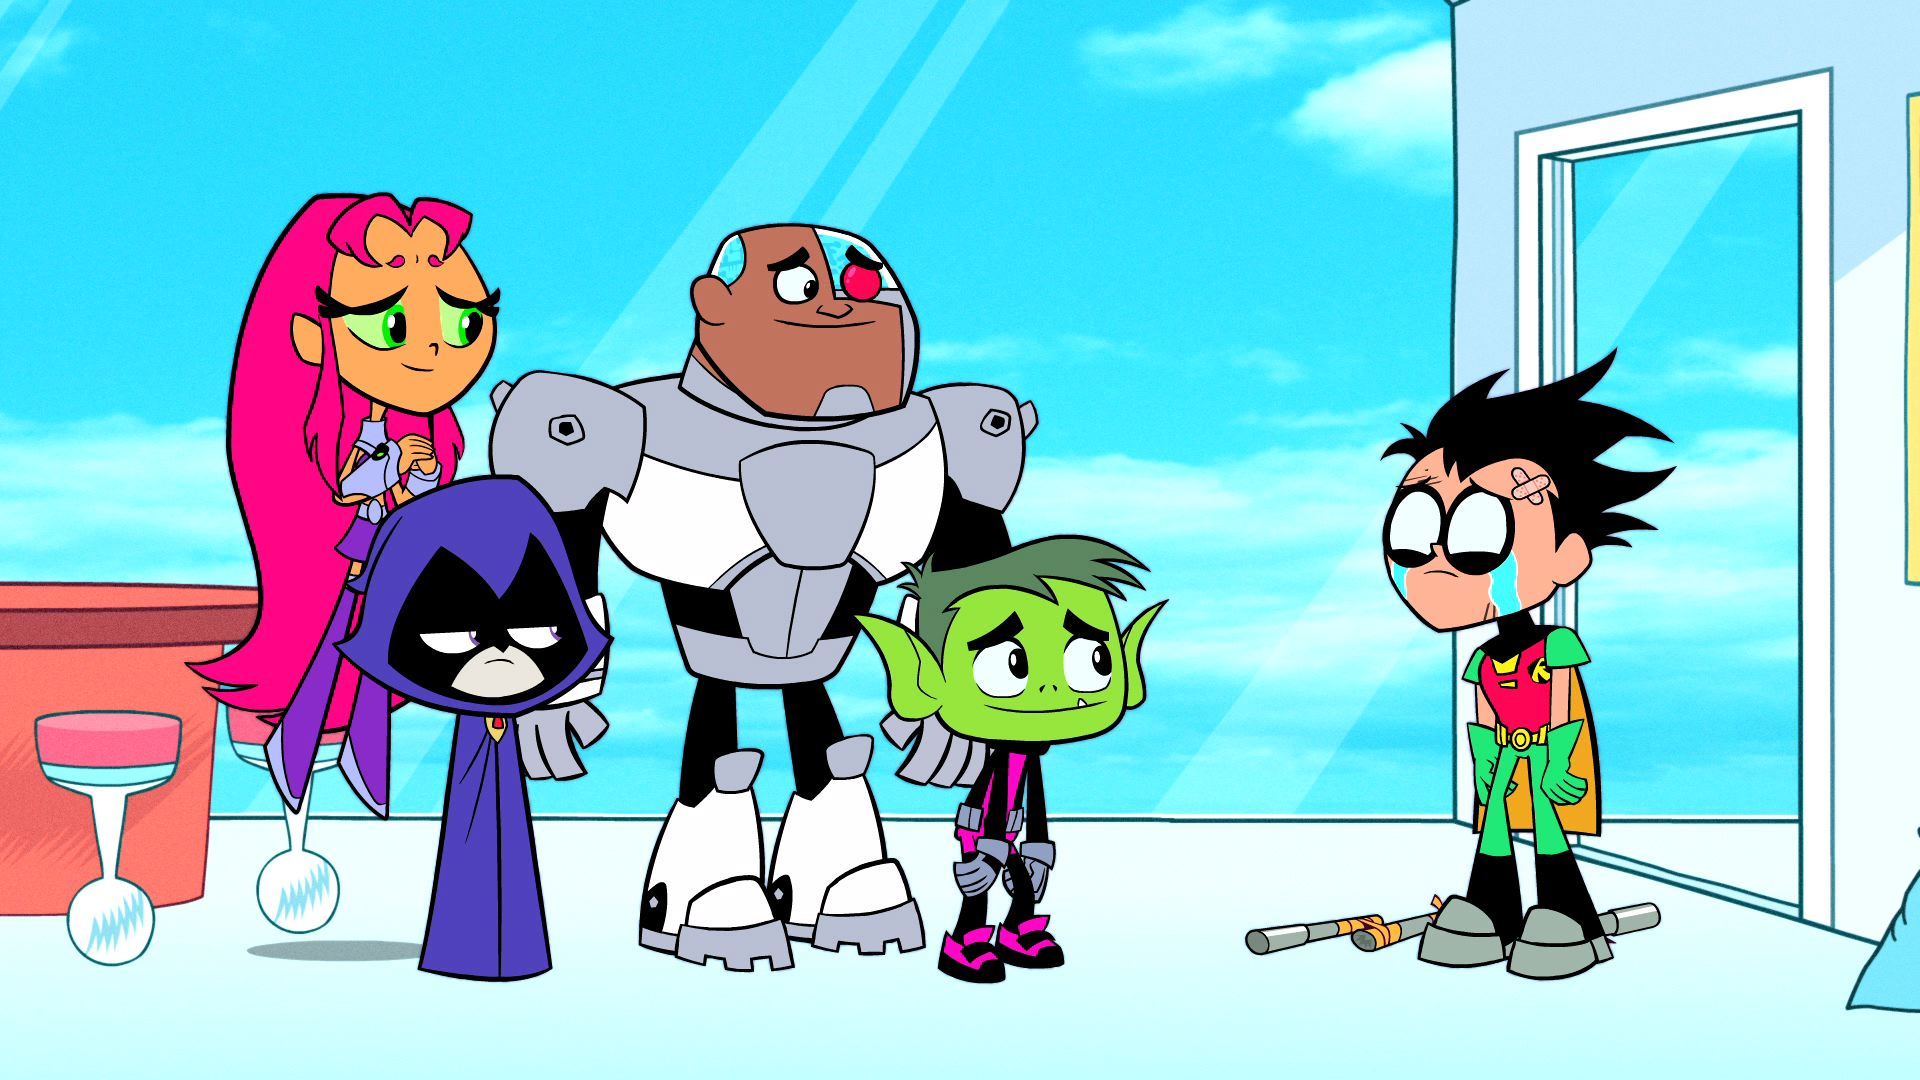 Teen Titans Go Wallpapers Hd - Wallpapersafari-4701